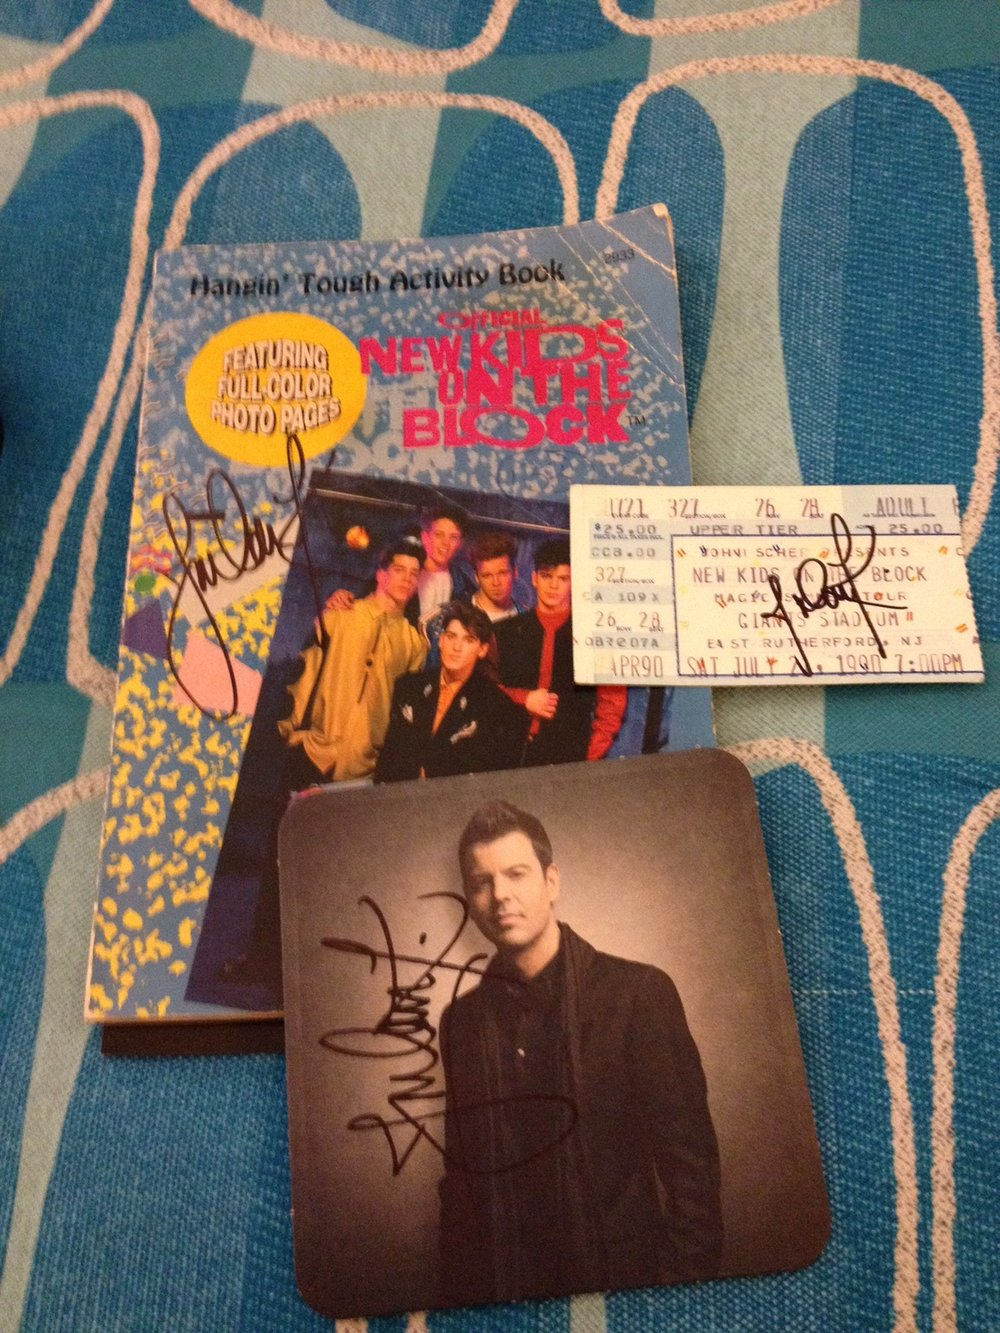 This photo has a few things I had signed by Jordan Knight during a hangout he had during the Nick & Knight tour a few years back. The hangout was a special meet and greet he did during the tour that included an individual photo with Jordan, opportunity to take selfies and get memorabilia signed, and some time to chat with him briefly as he went table to table to greet the fans. I had him sign an old NKOTB activity book, one of our tickets from the Magic Summer Tour I still had, and his coaster from the 10 Box Set.